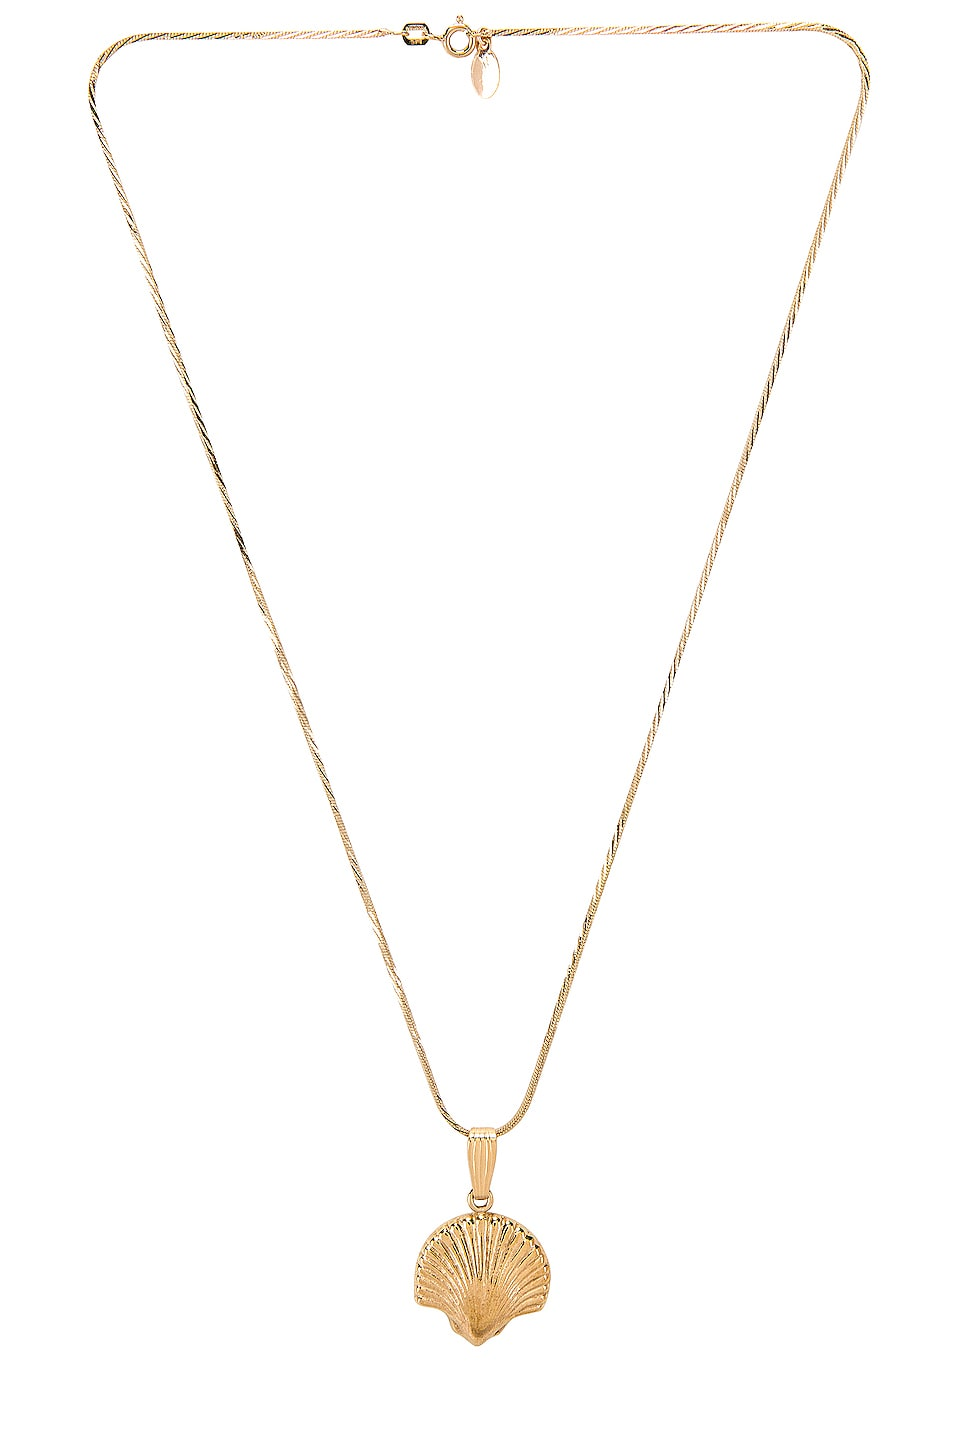 Paradigm Scallop Necklace in Gold